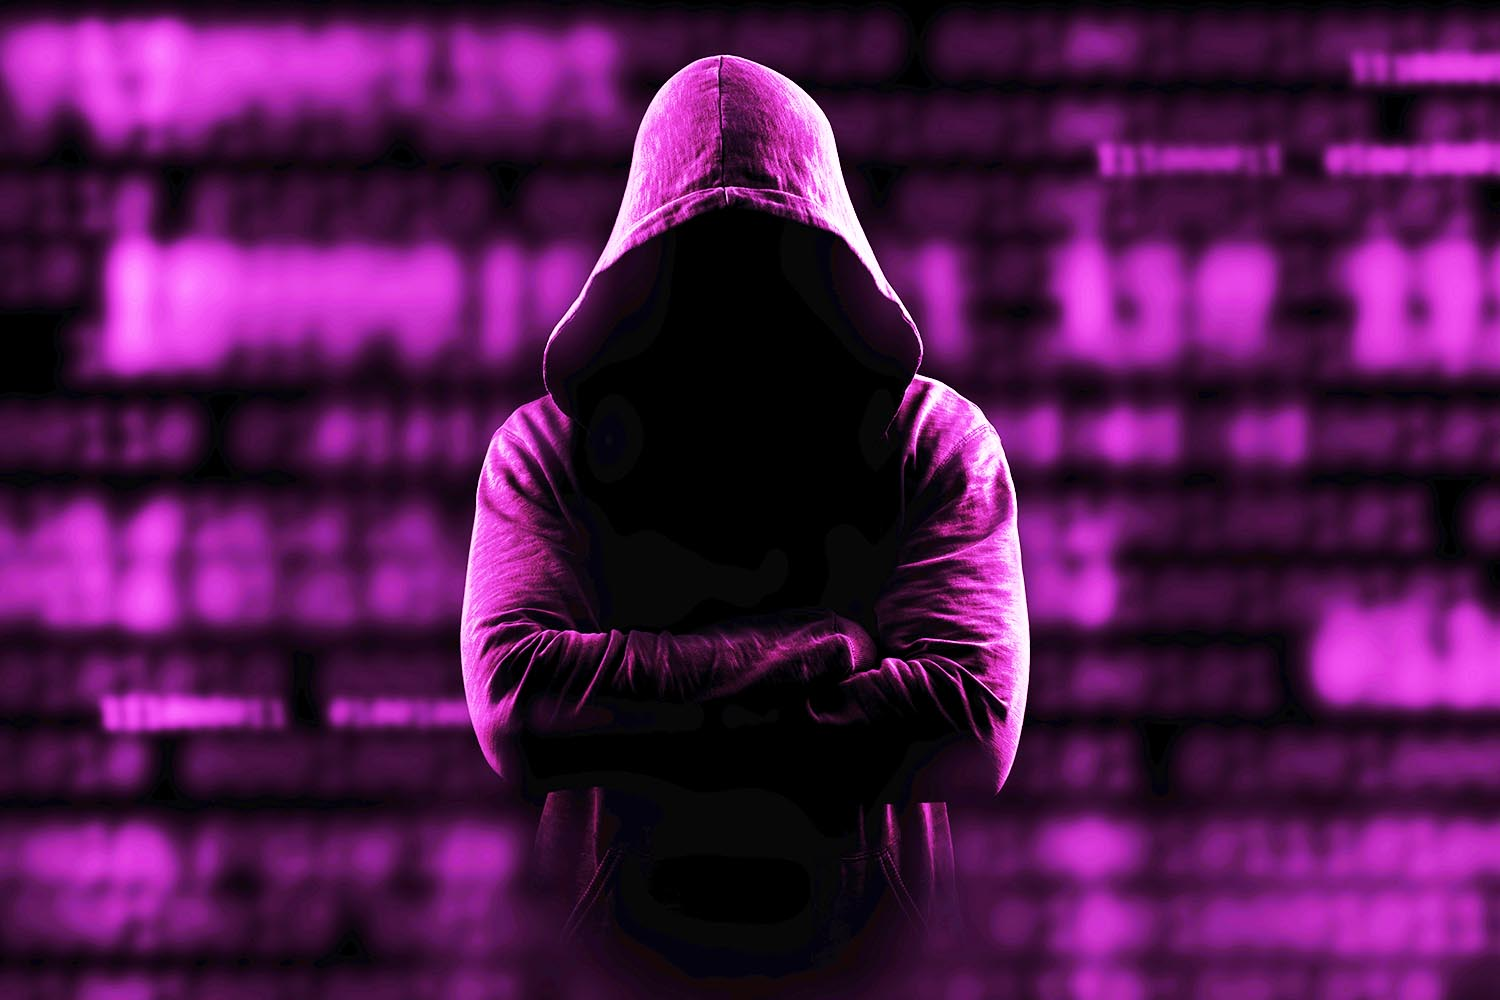 Hire A Hacker For Bitcoin From The Dark Web 2021